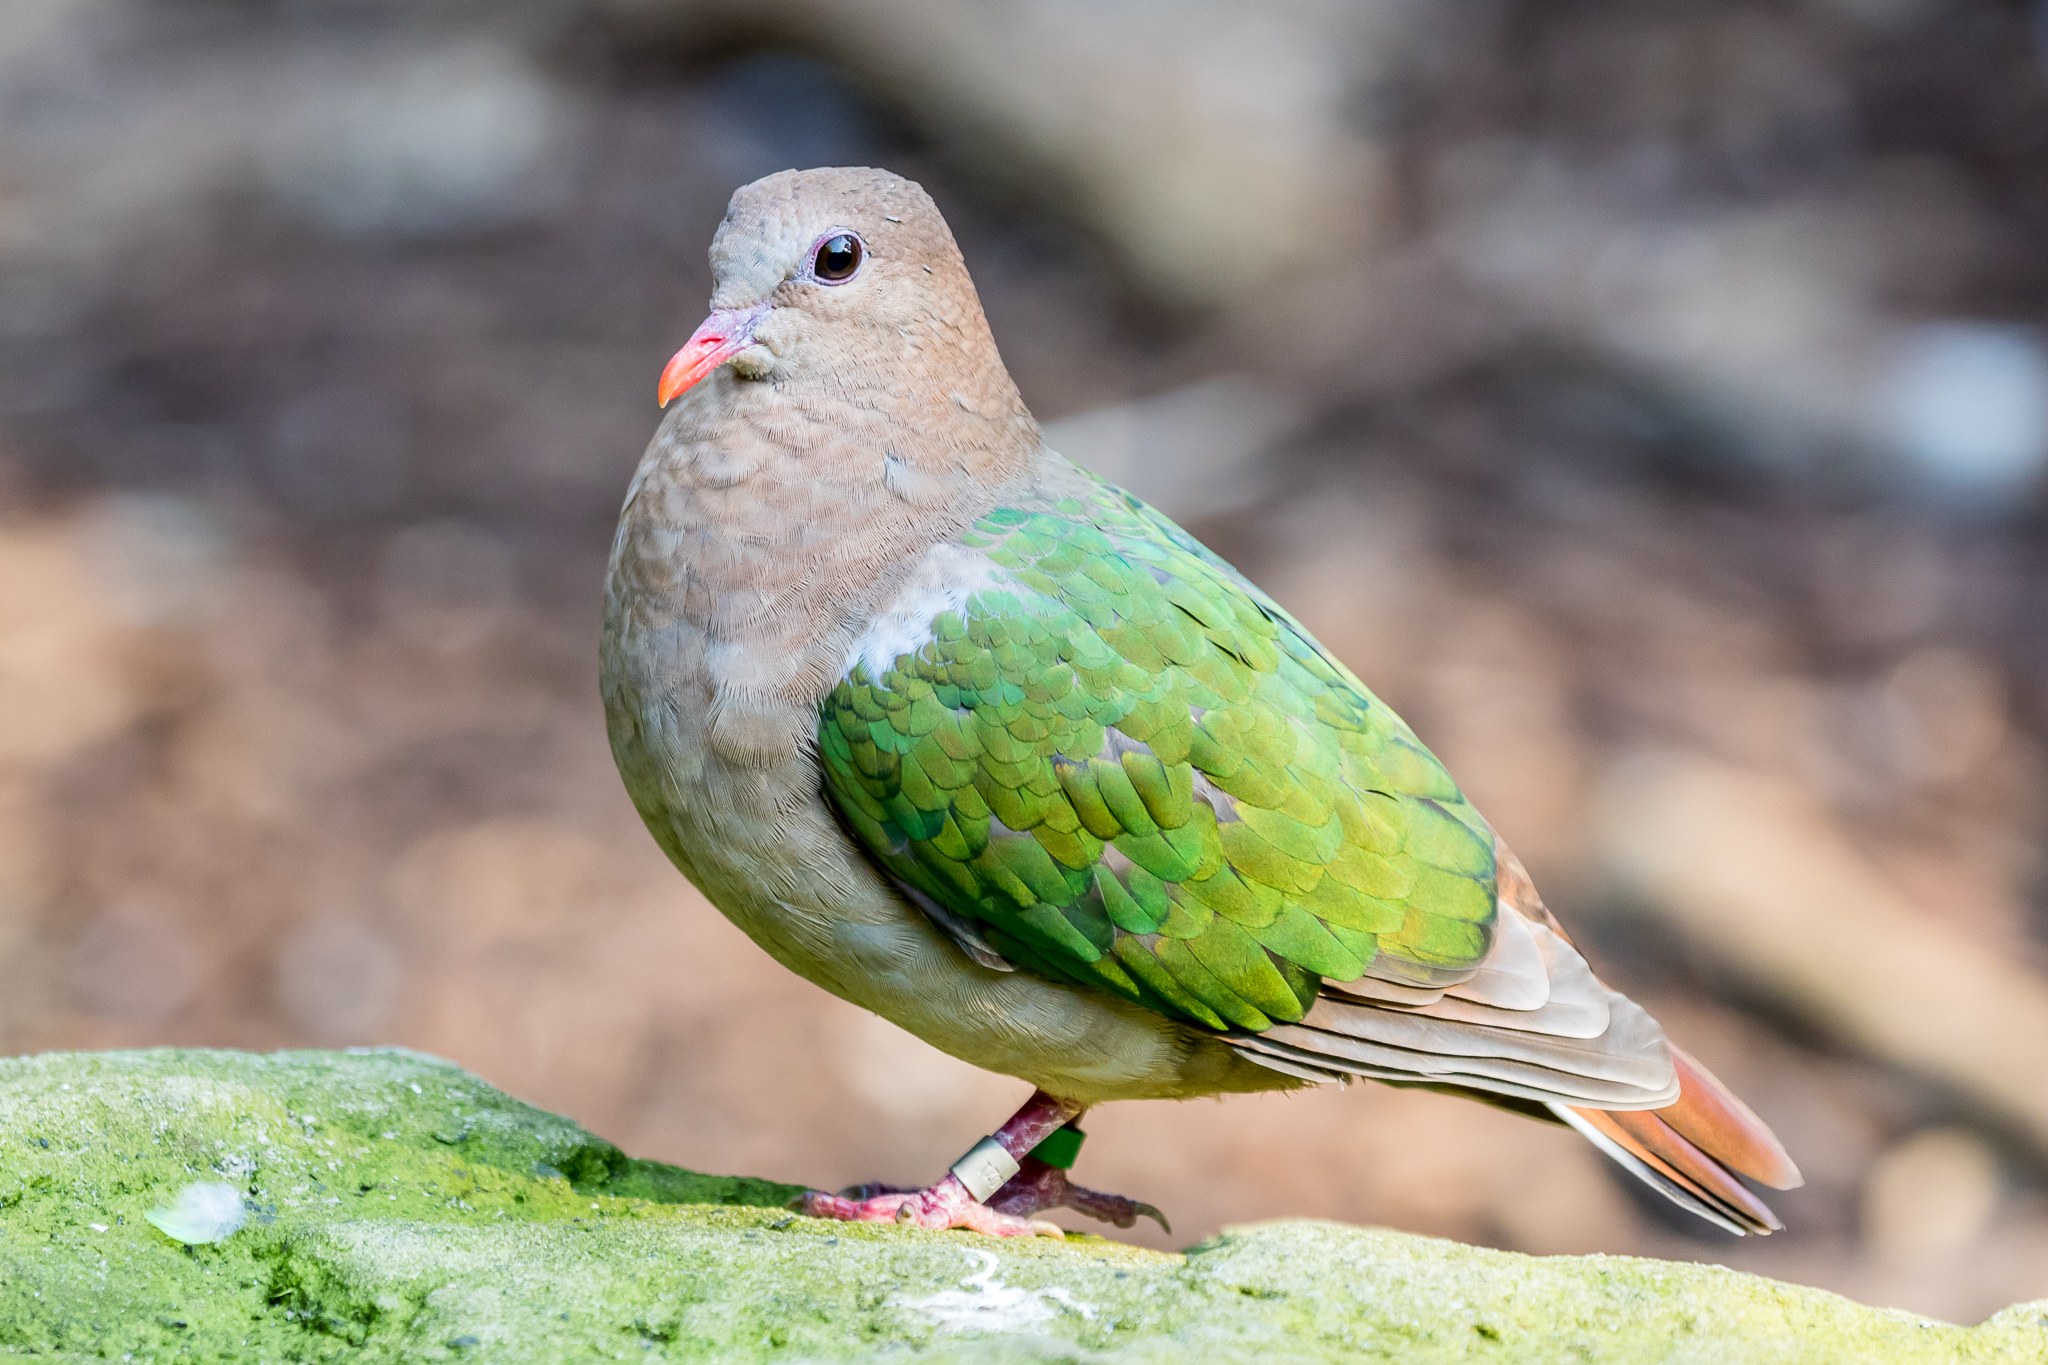 The Emerald Dove (27 cm) is widespread across Southeast Asia and is found in the forests of northern and eastern Australia. They eat seeds and fruit, feeding on the ground.